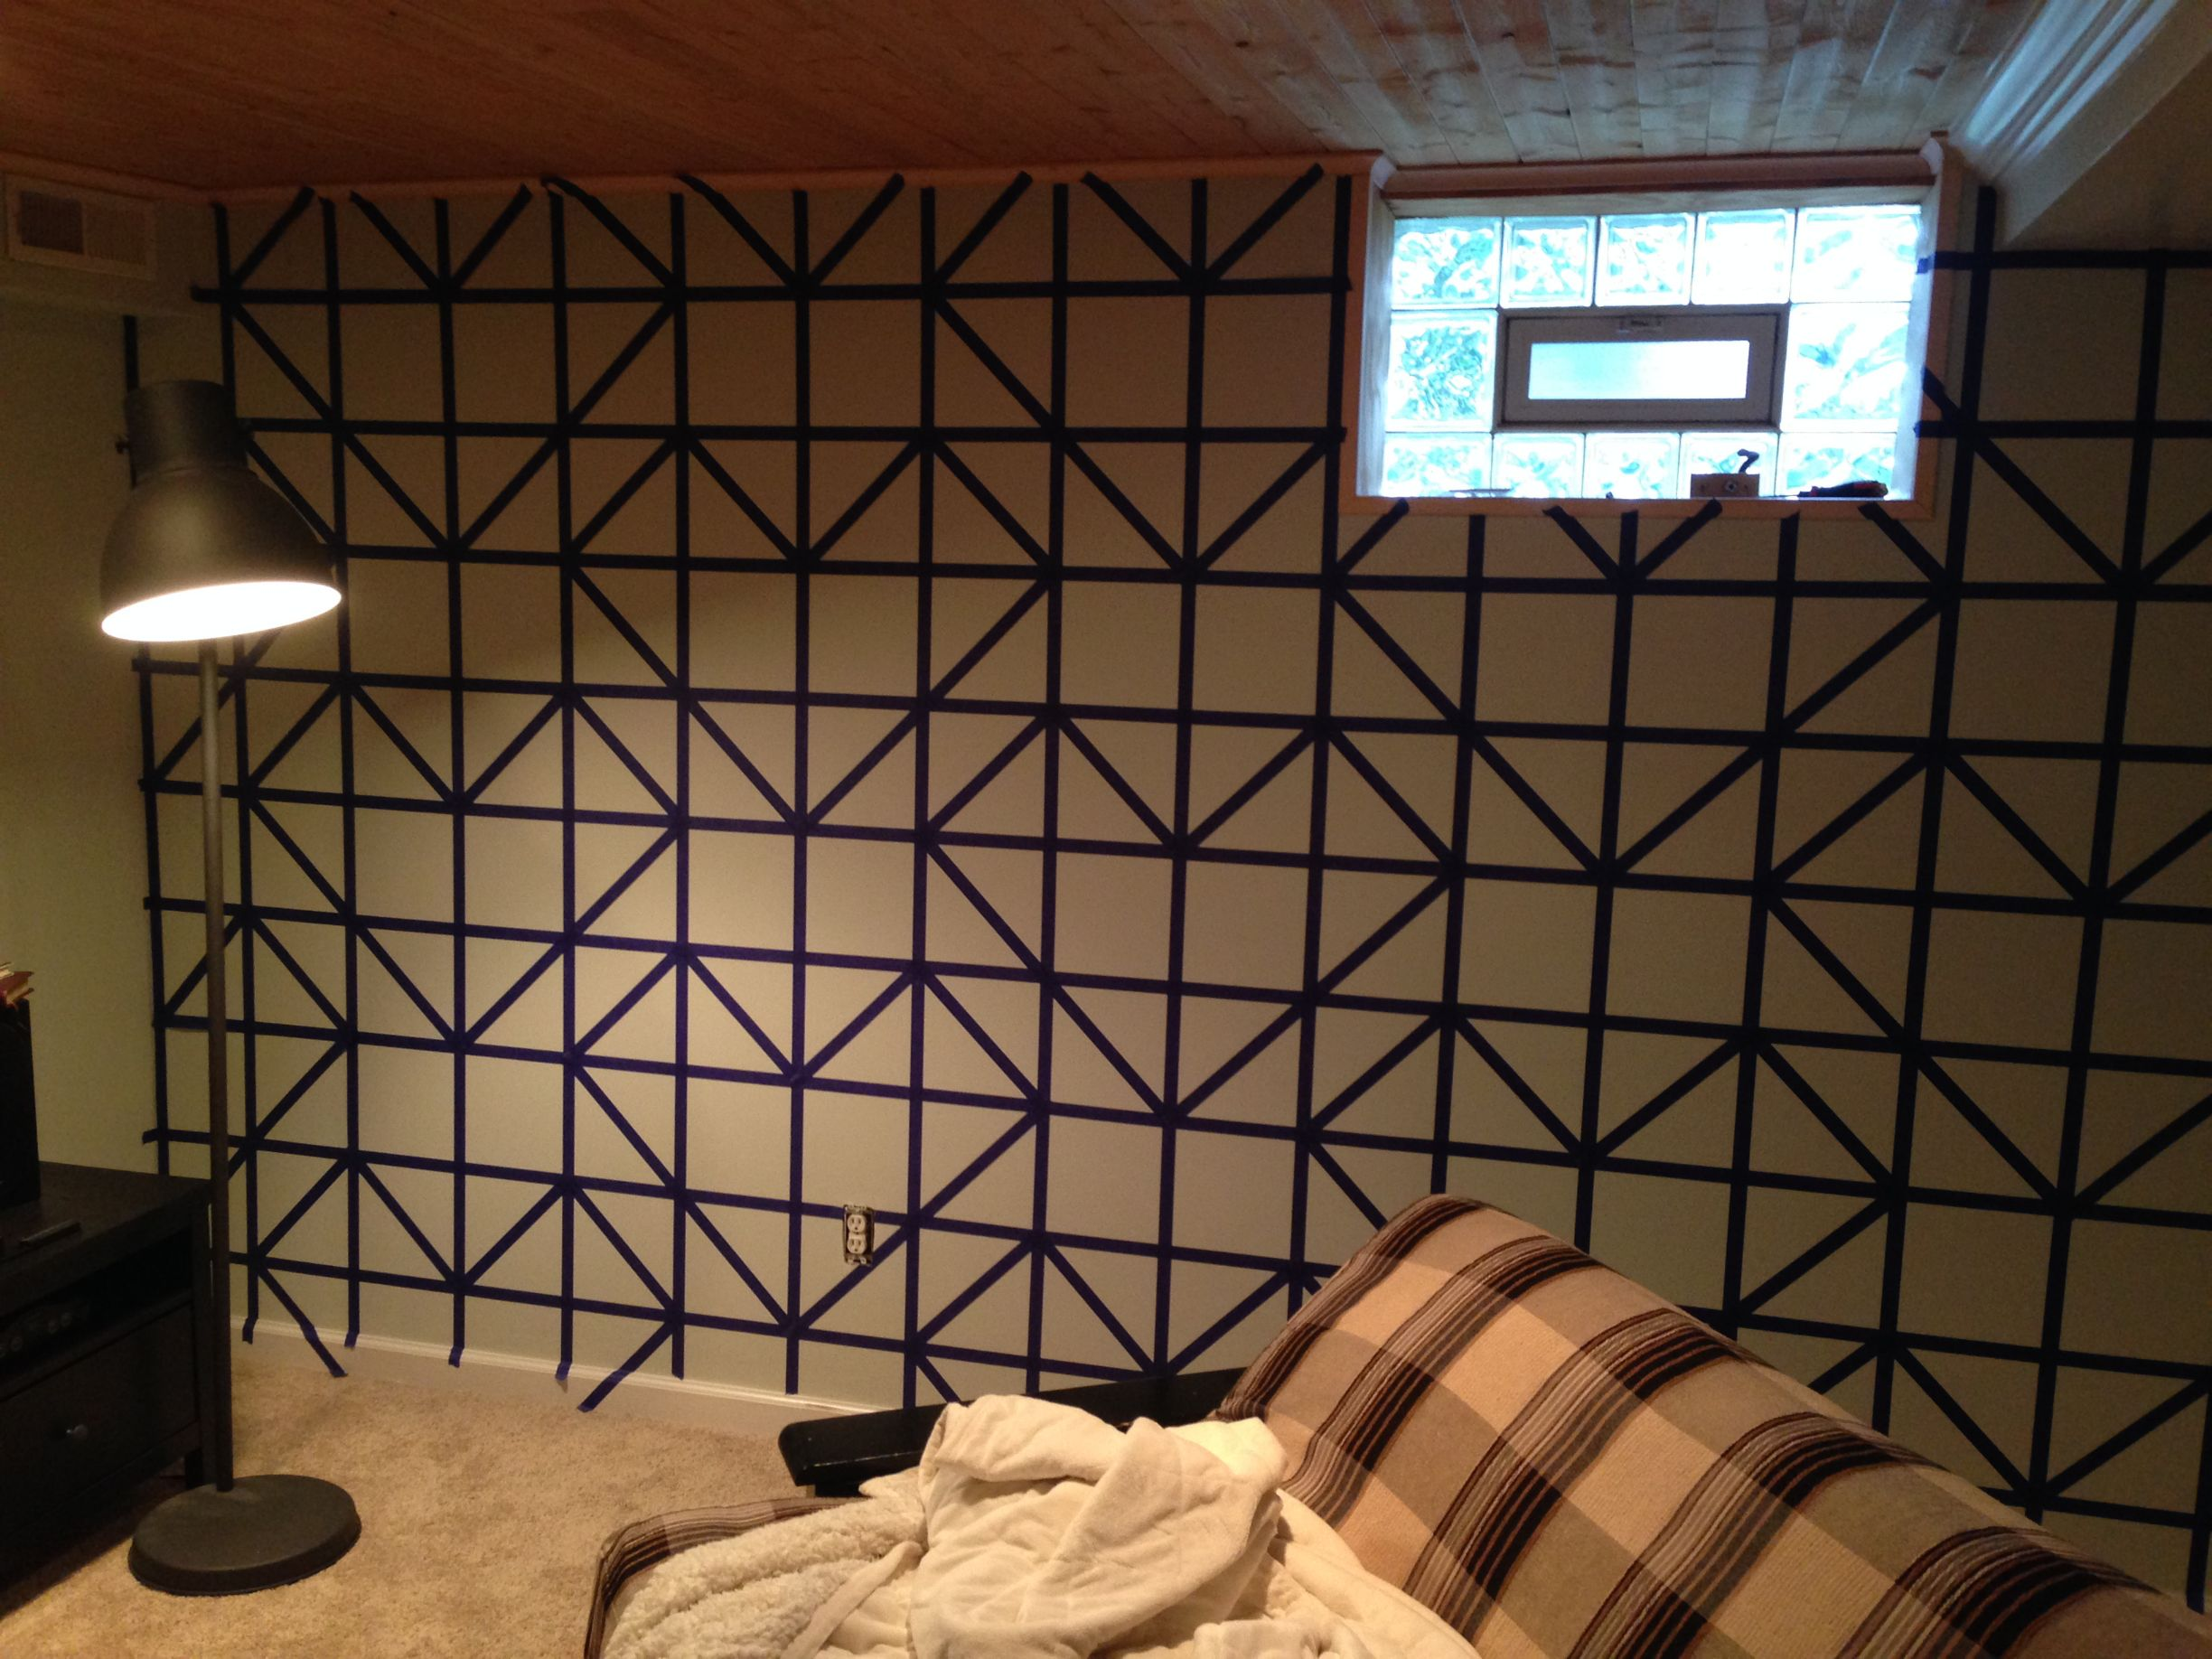 paint a design on wall geometric triangle idea with tape diy for life images bhxtazr mx8dufq - Paint Designs On Walls With Tape Ideas